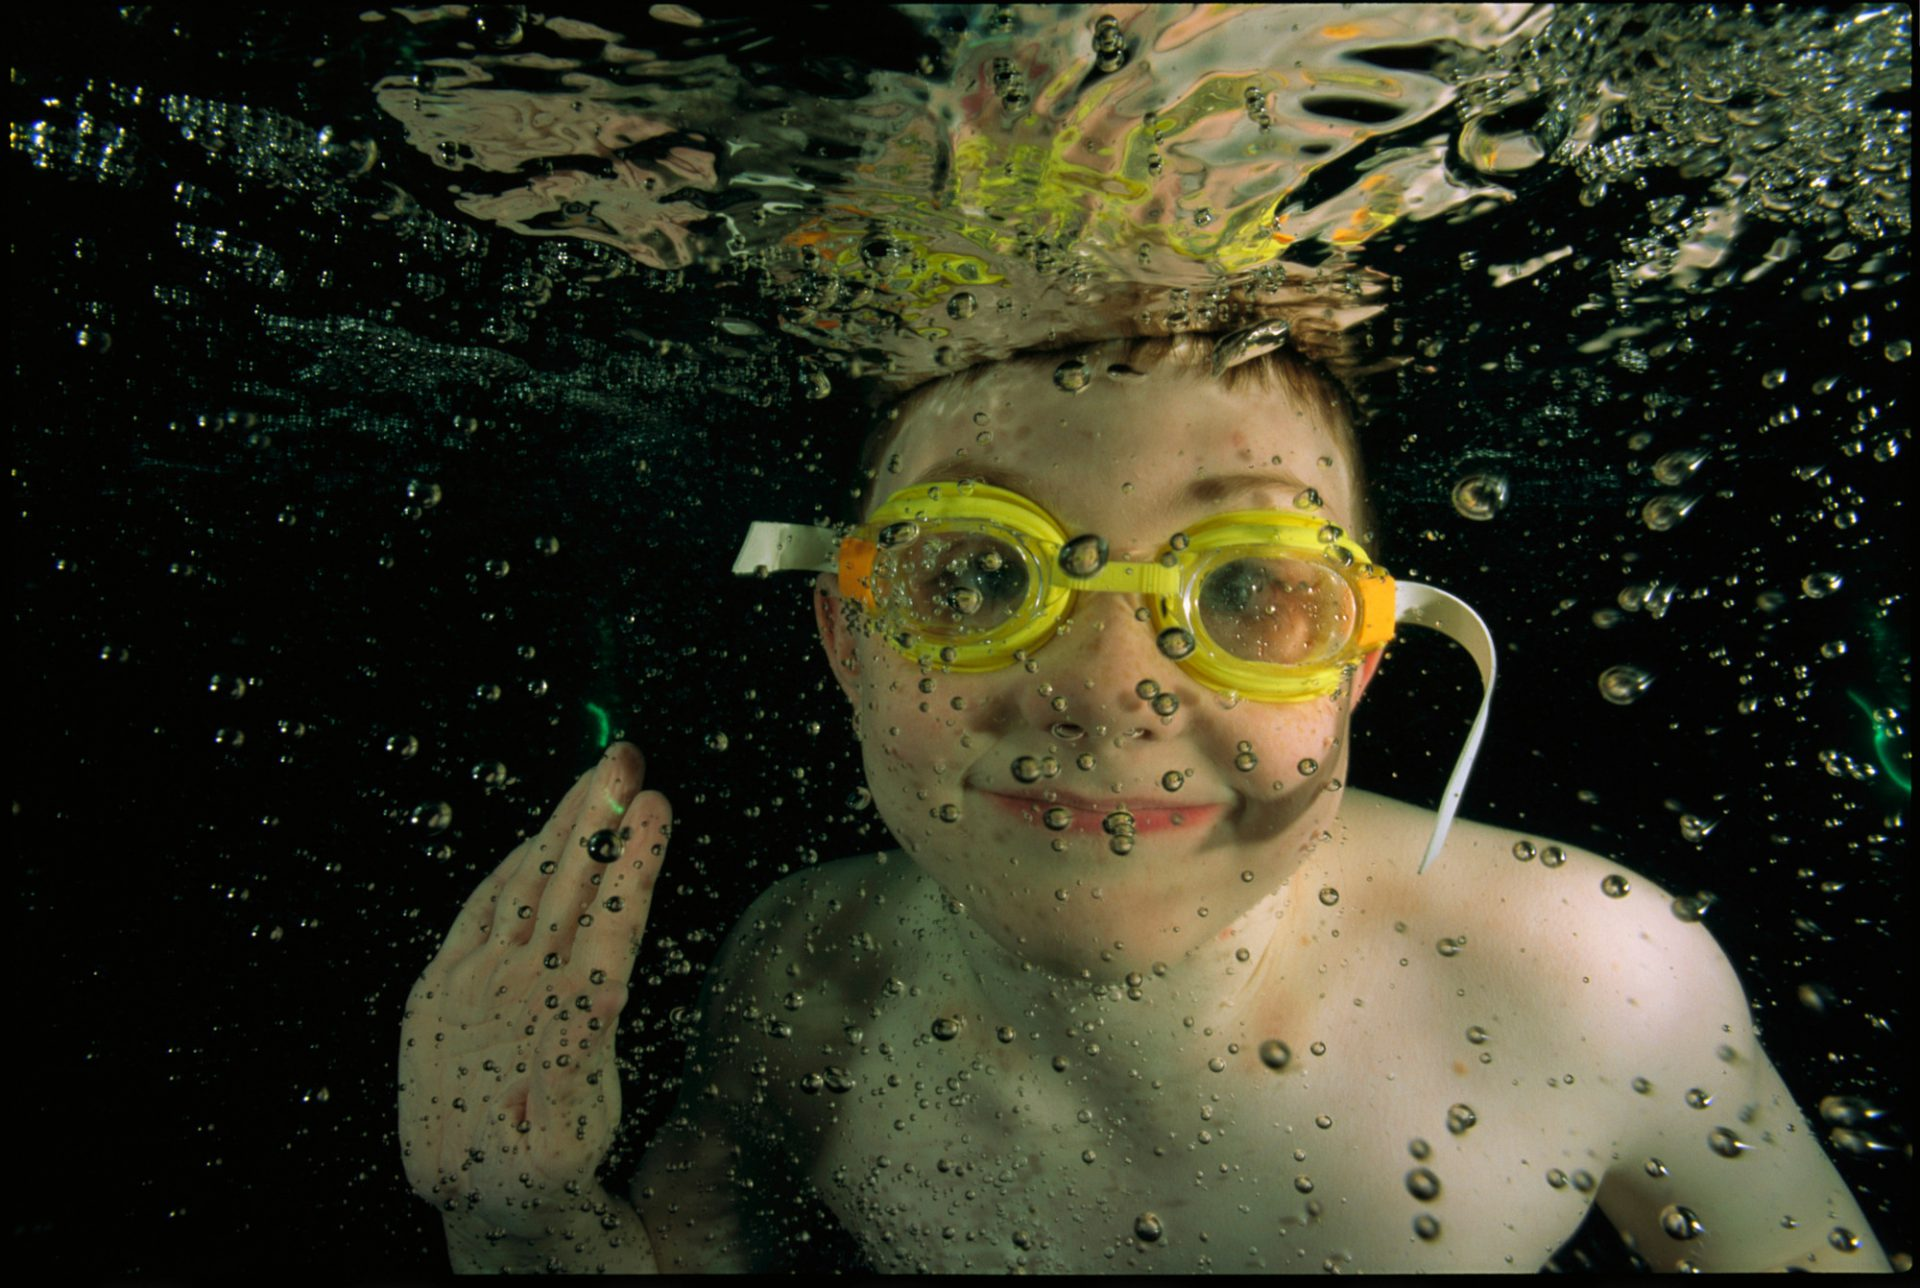 Photo: A boy grins at the camera while swimming underwater.